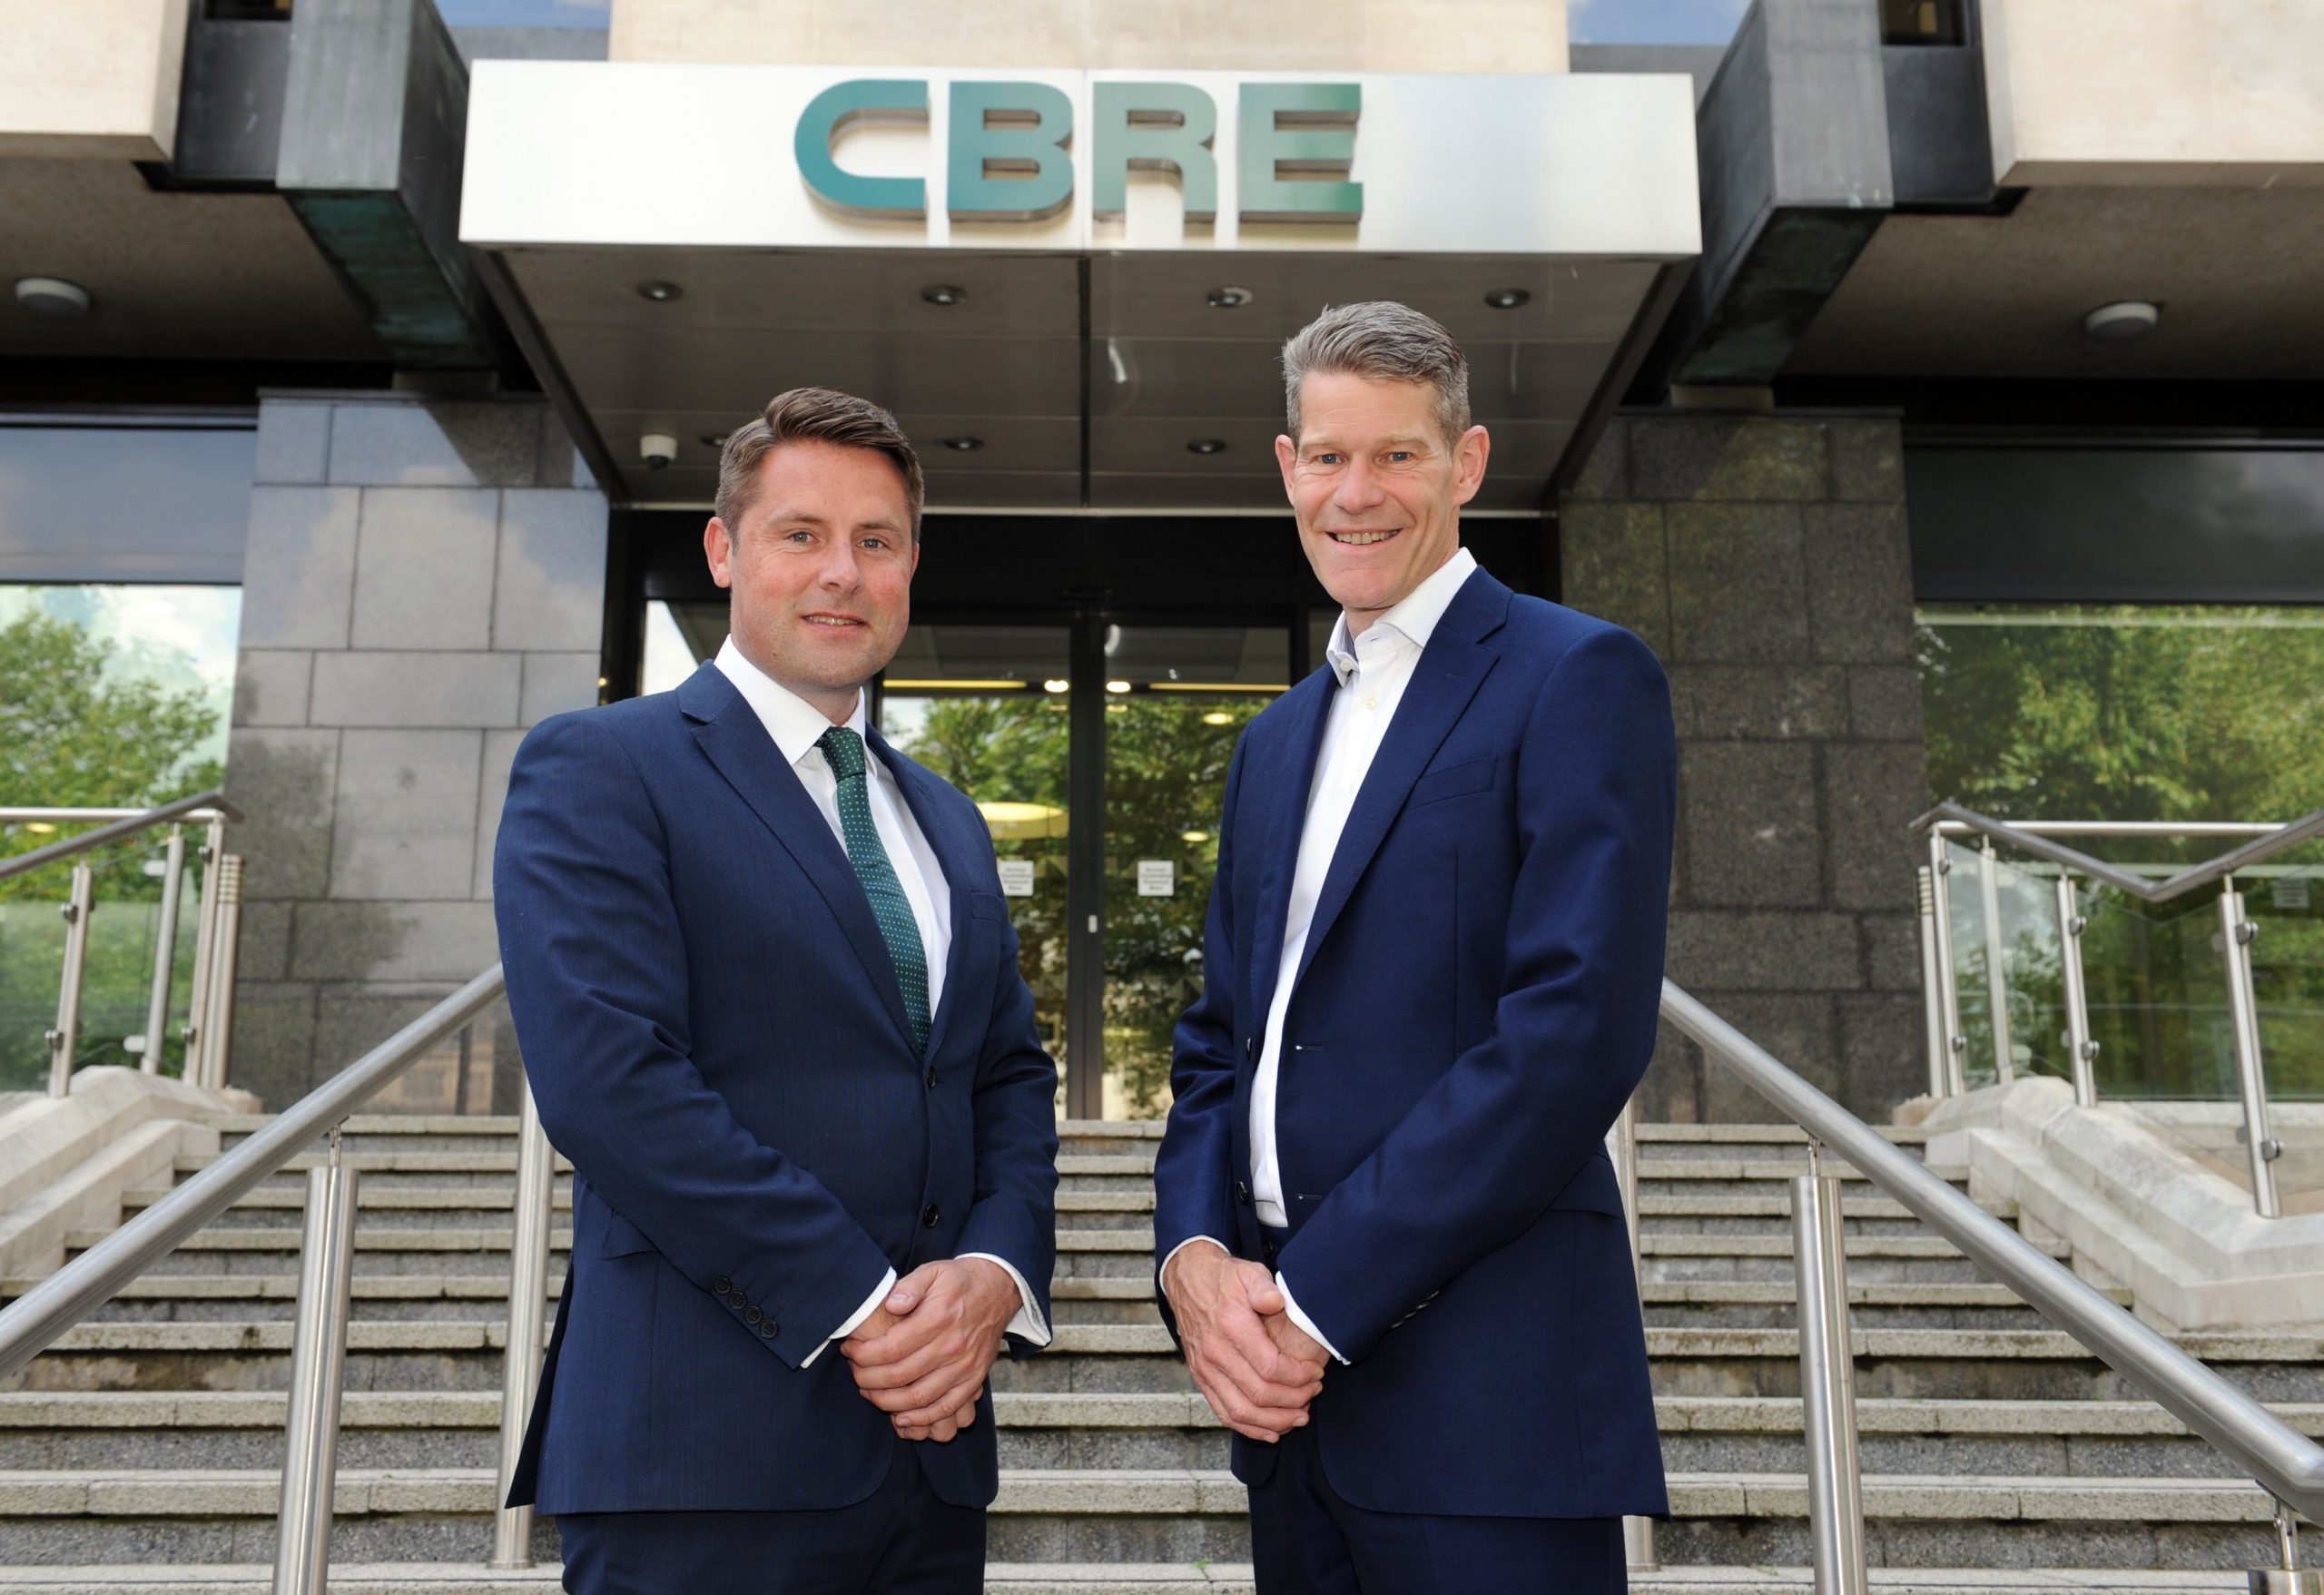 Will Ventham, and Martin Guest, CBRE